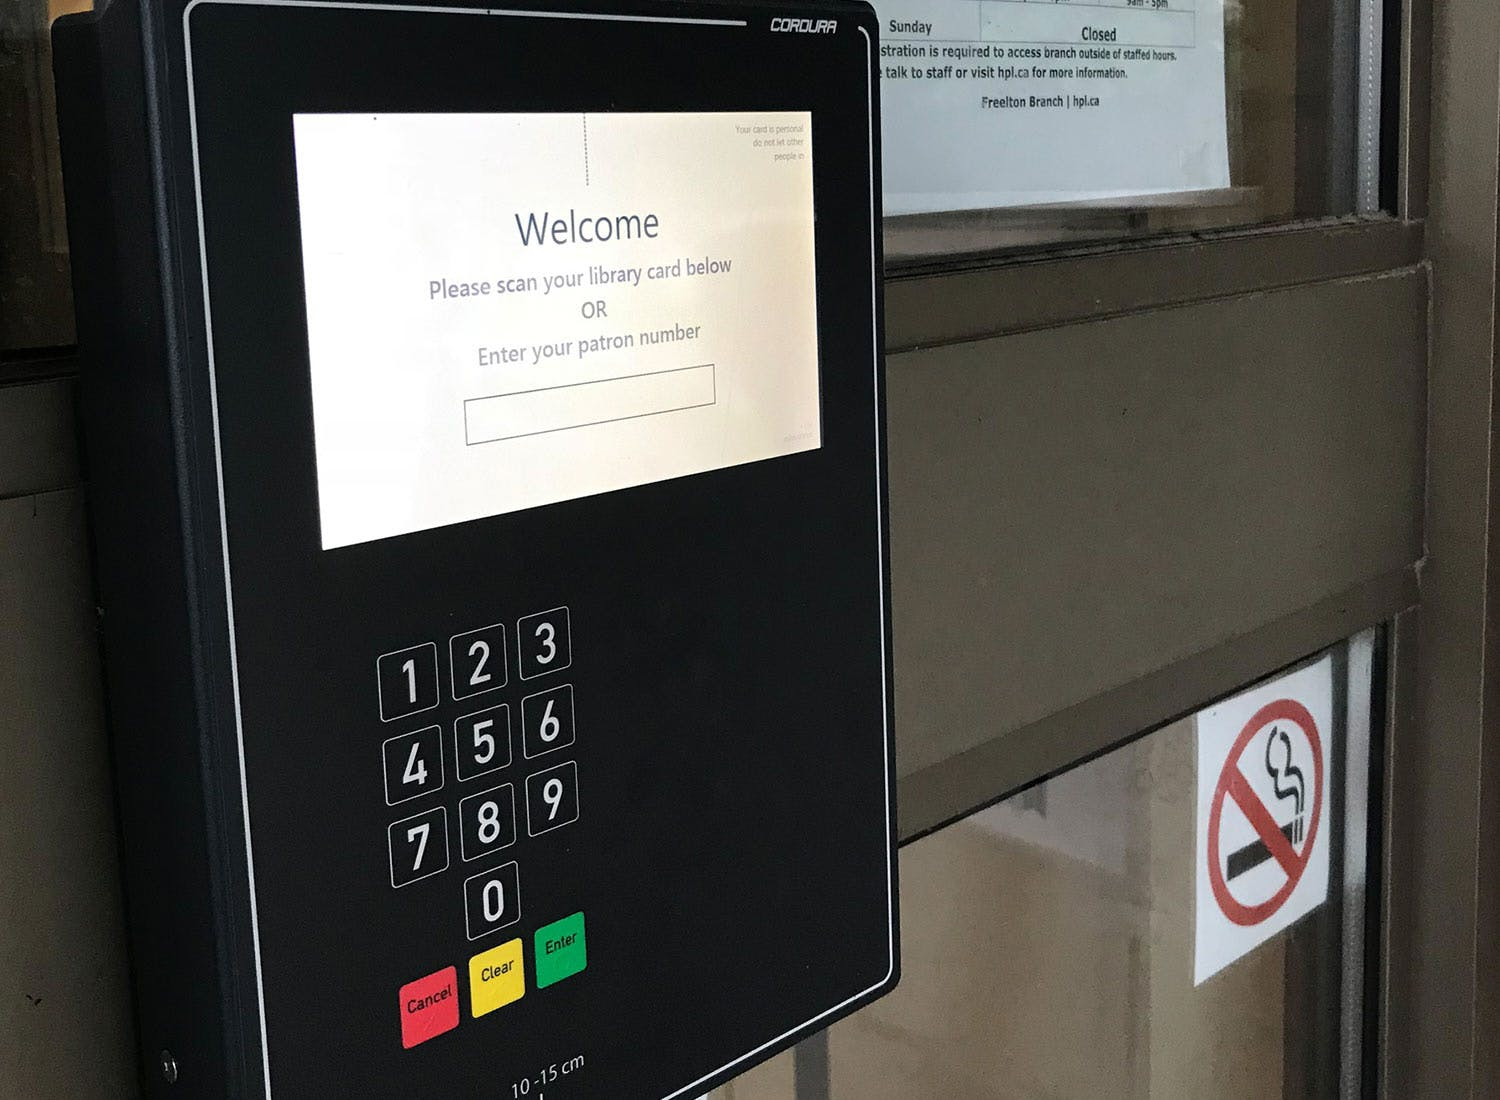 Library Card Reader Scanner/Control Panel Example